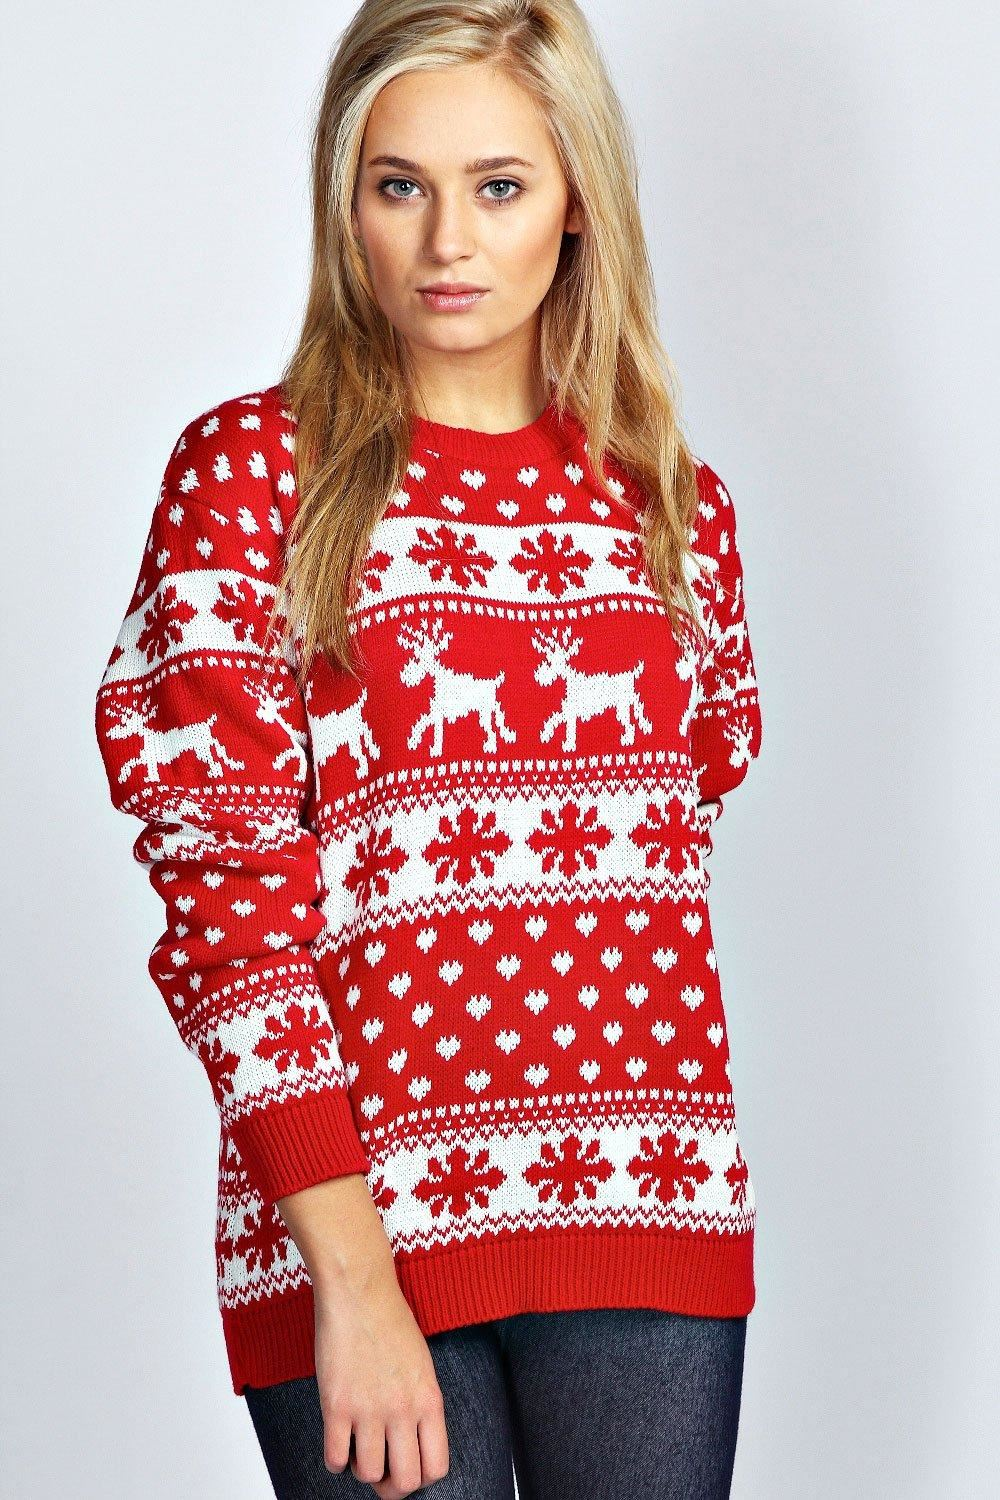 christmas sweaters for women - HD881×1325